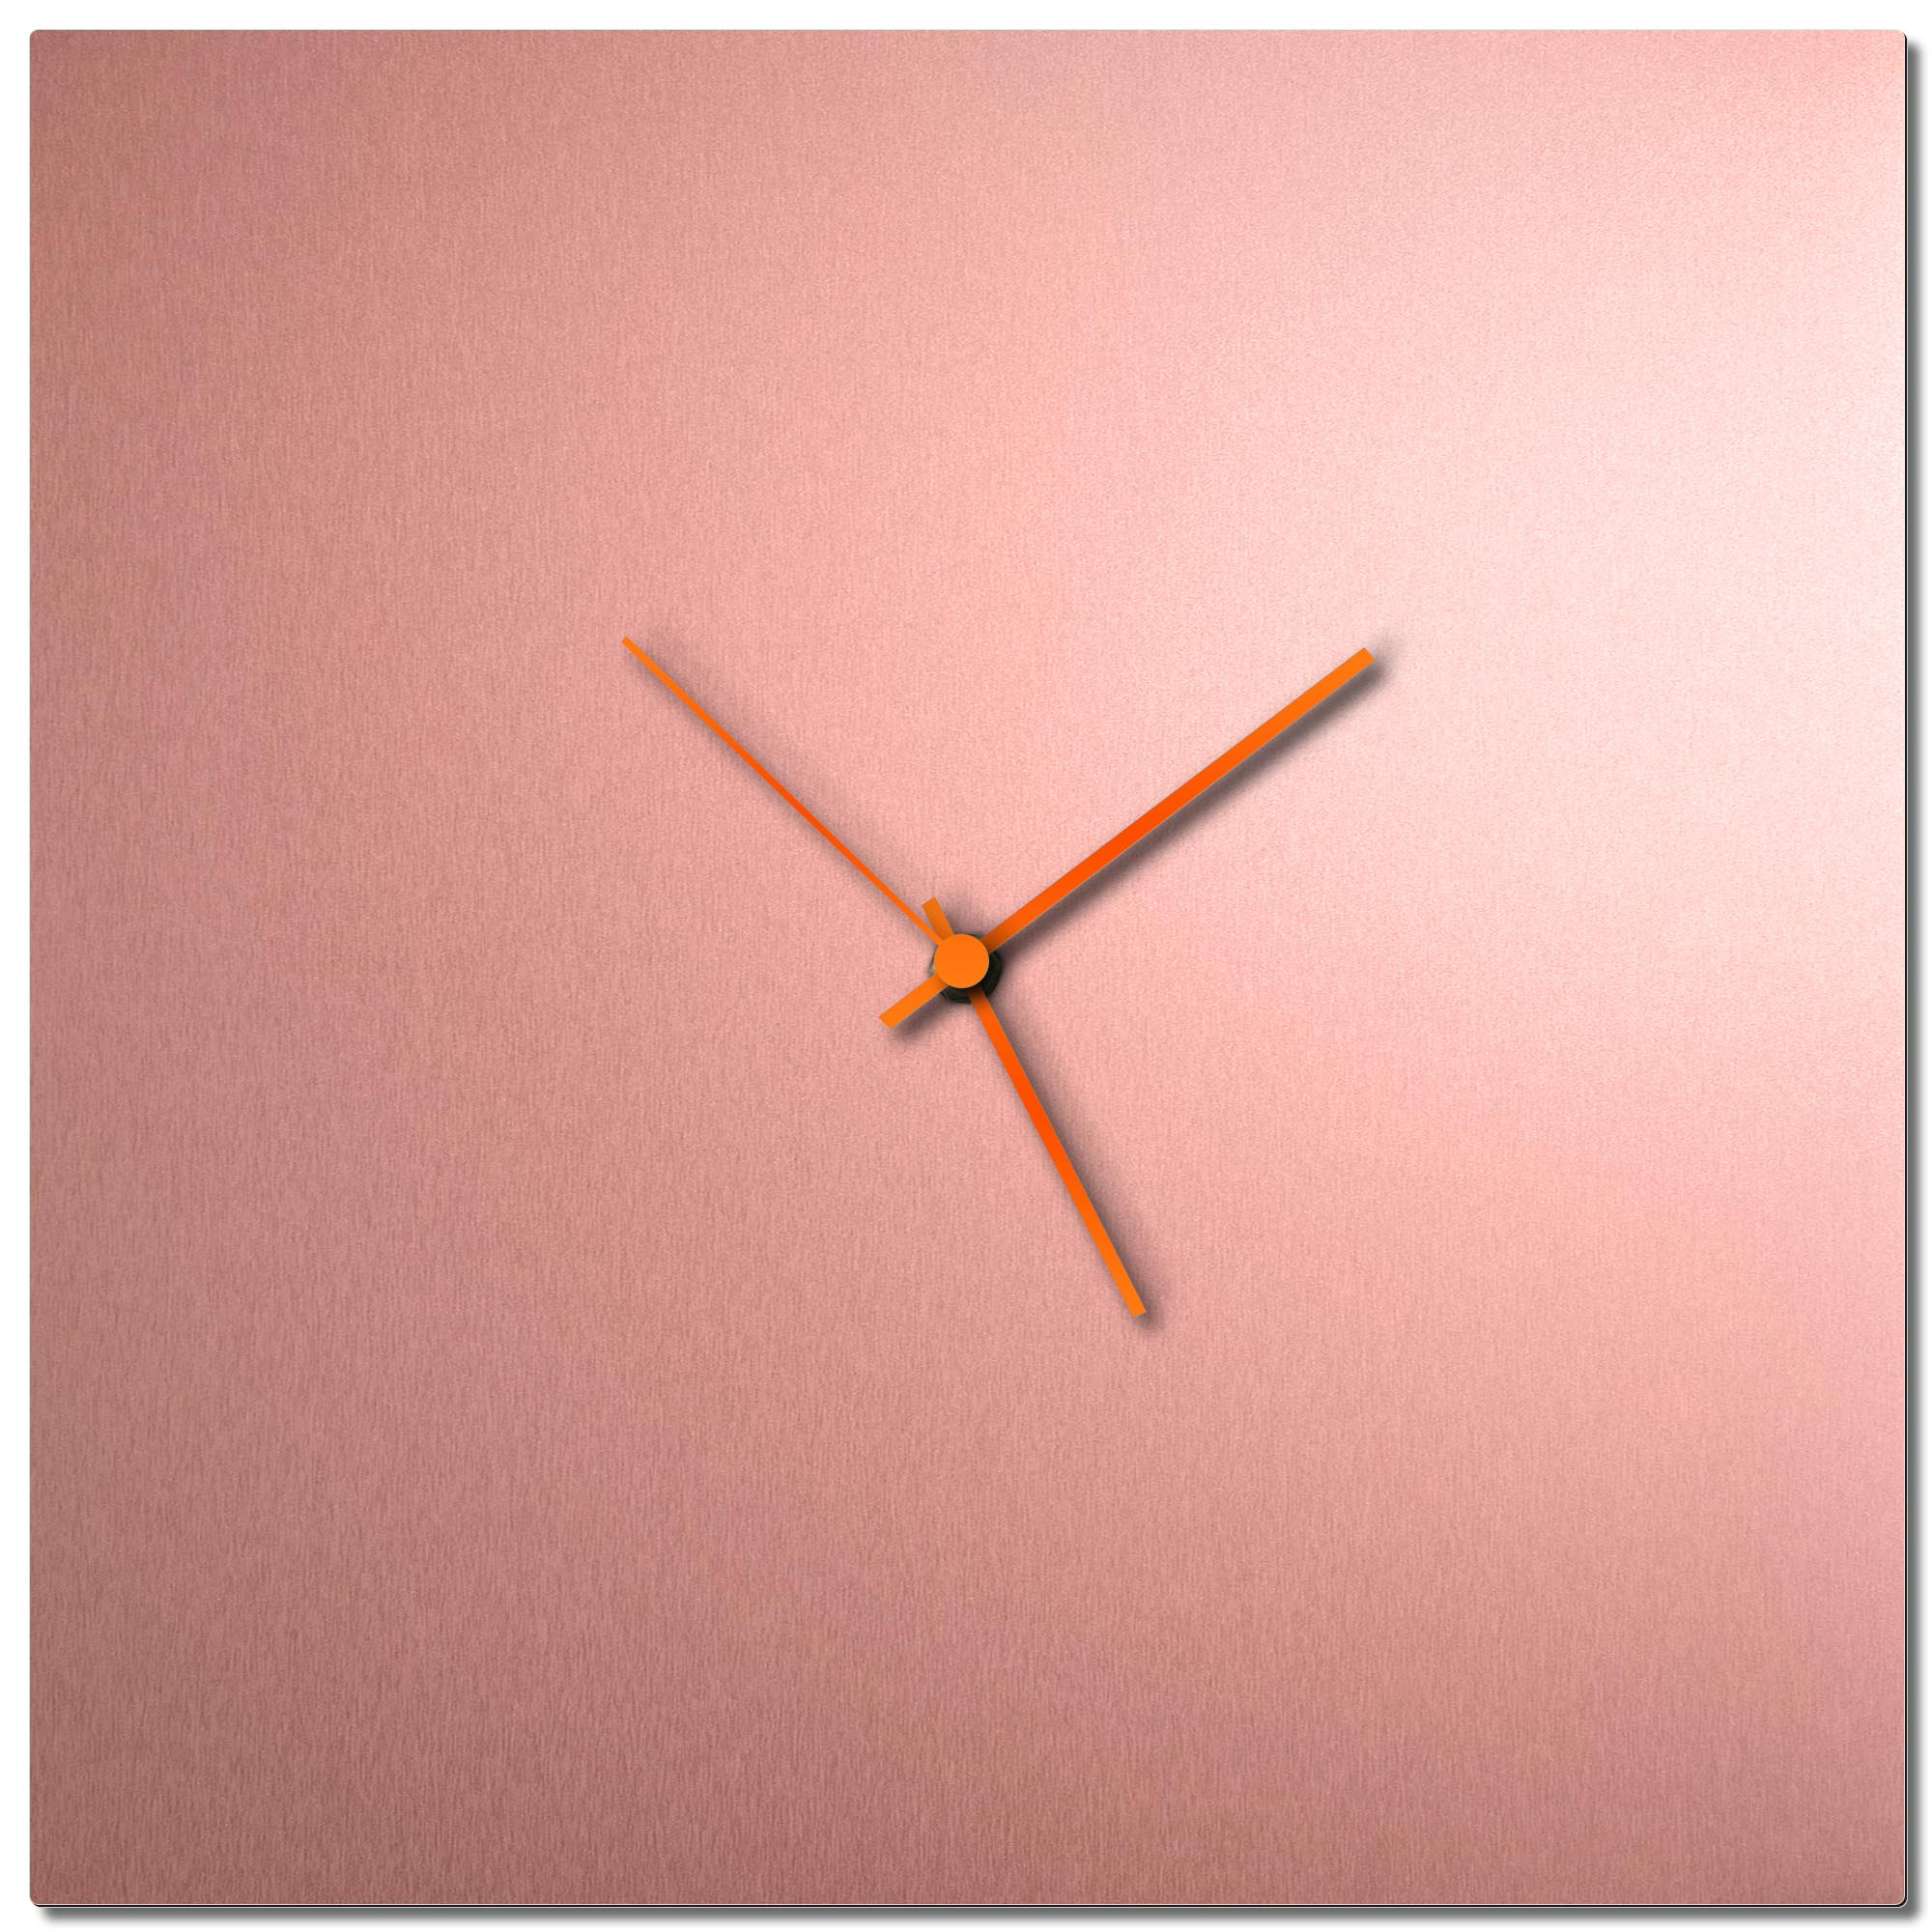 Adam Schwoeppe 'Coppersmith Square Clock Orange' Midcentury Modern Style Wall Clock